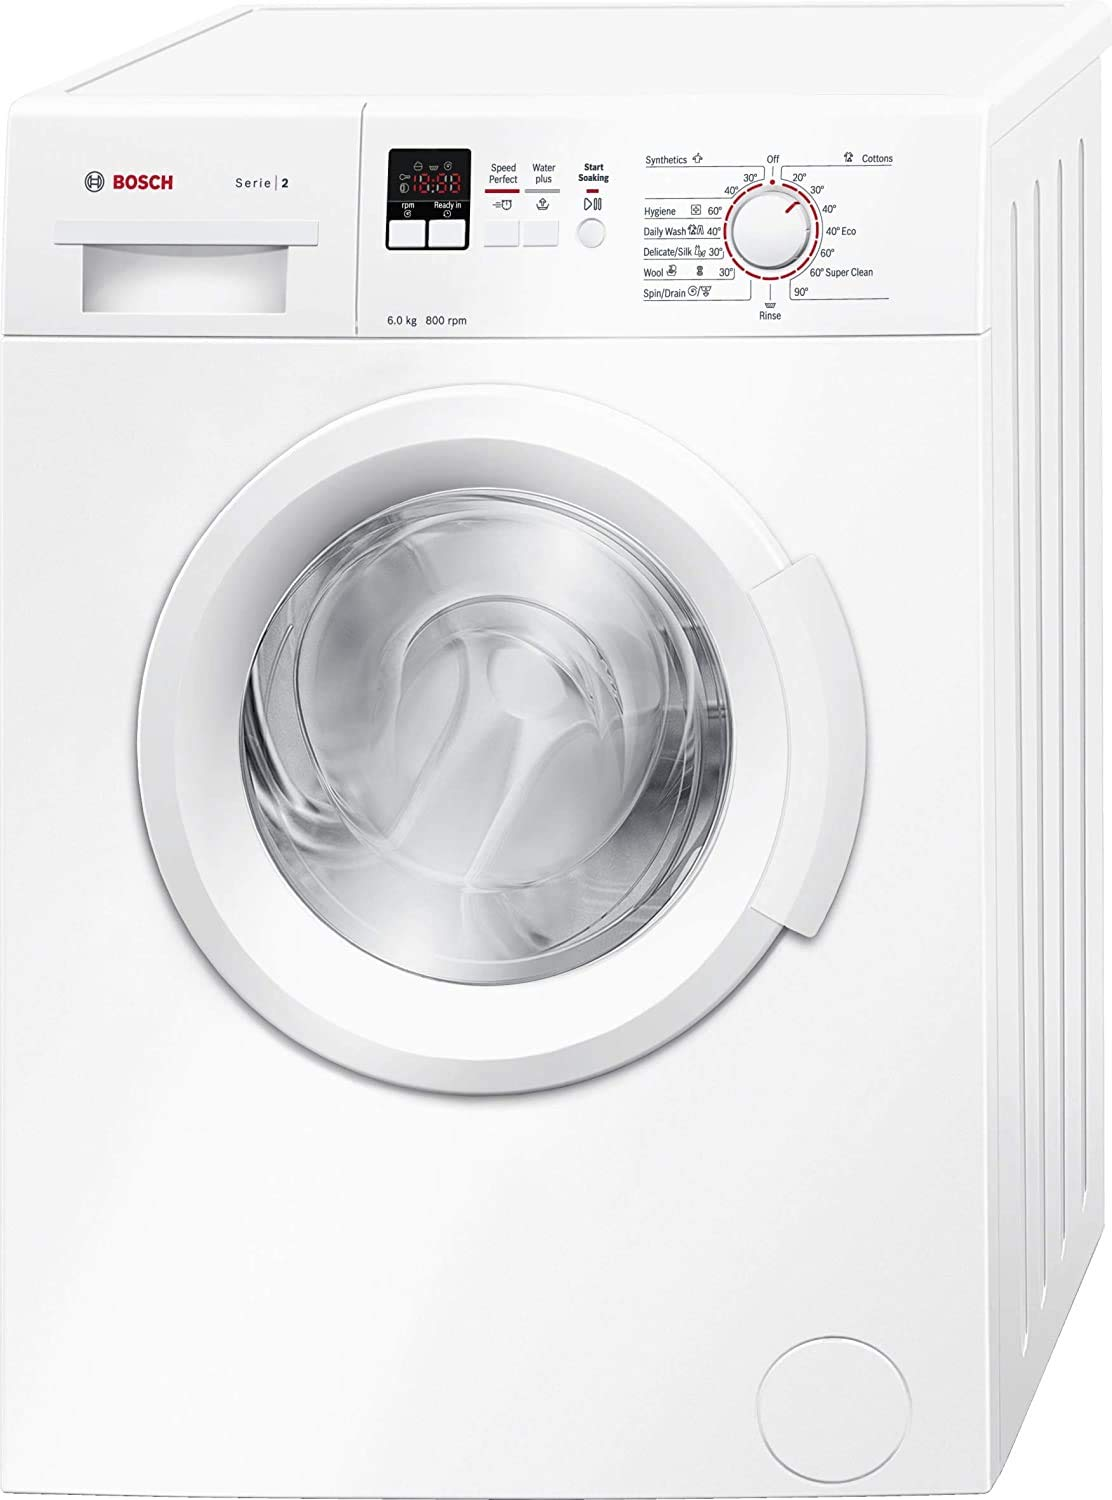 Bosch 6 kg 5 Star Inverter Fully Automatic Front Loading Washing Machine with In-built Heater